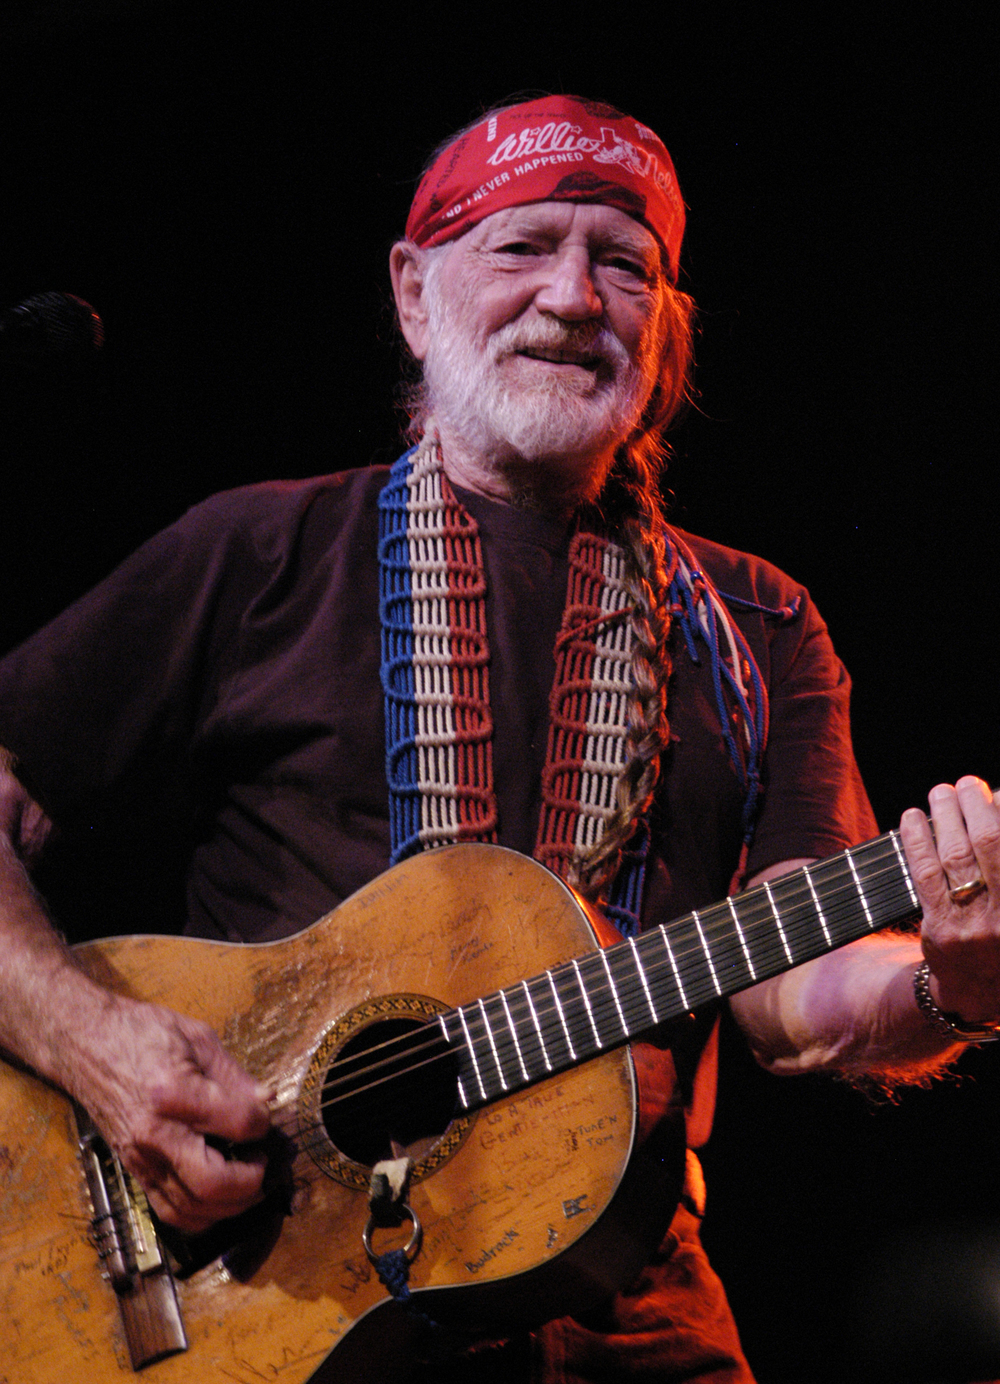 Willie_Nelson_Cambria_Harkey-5346.jpg